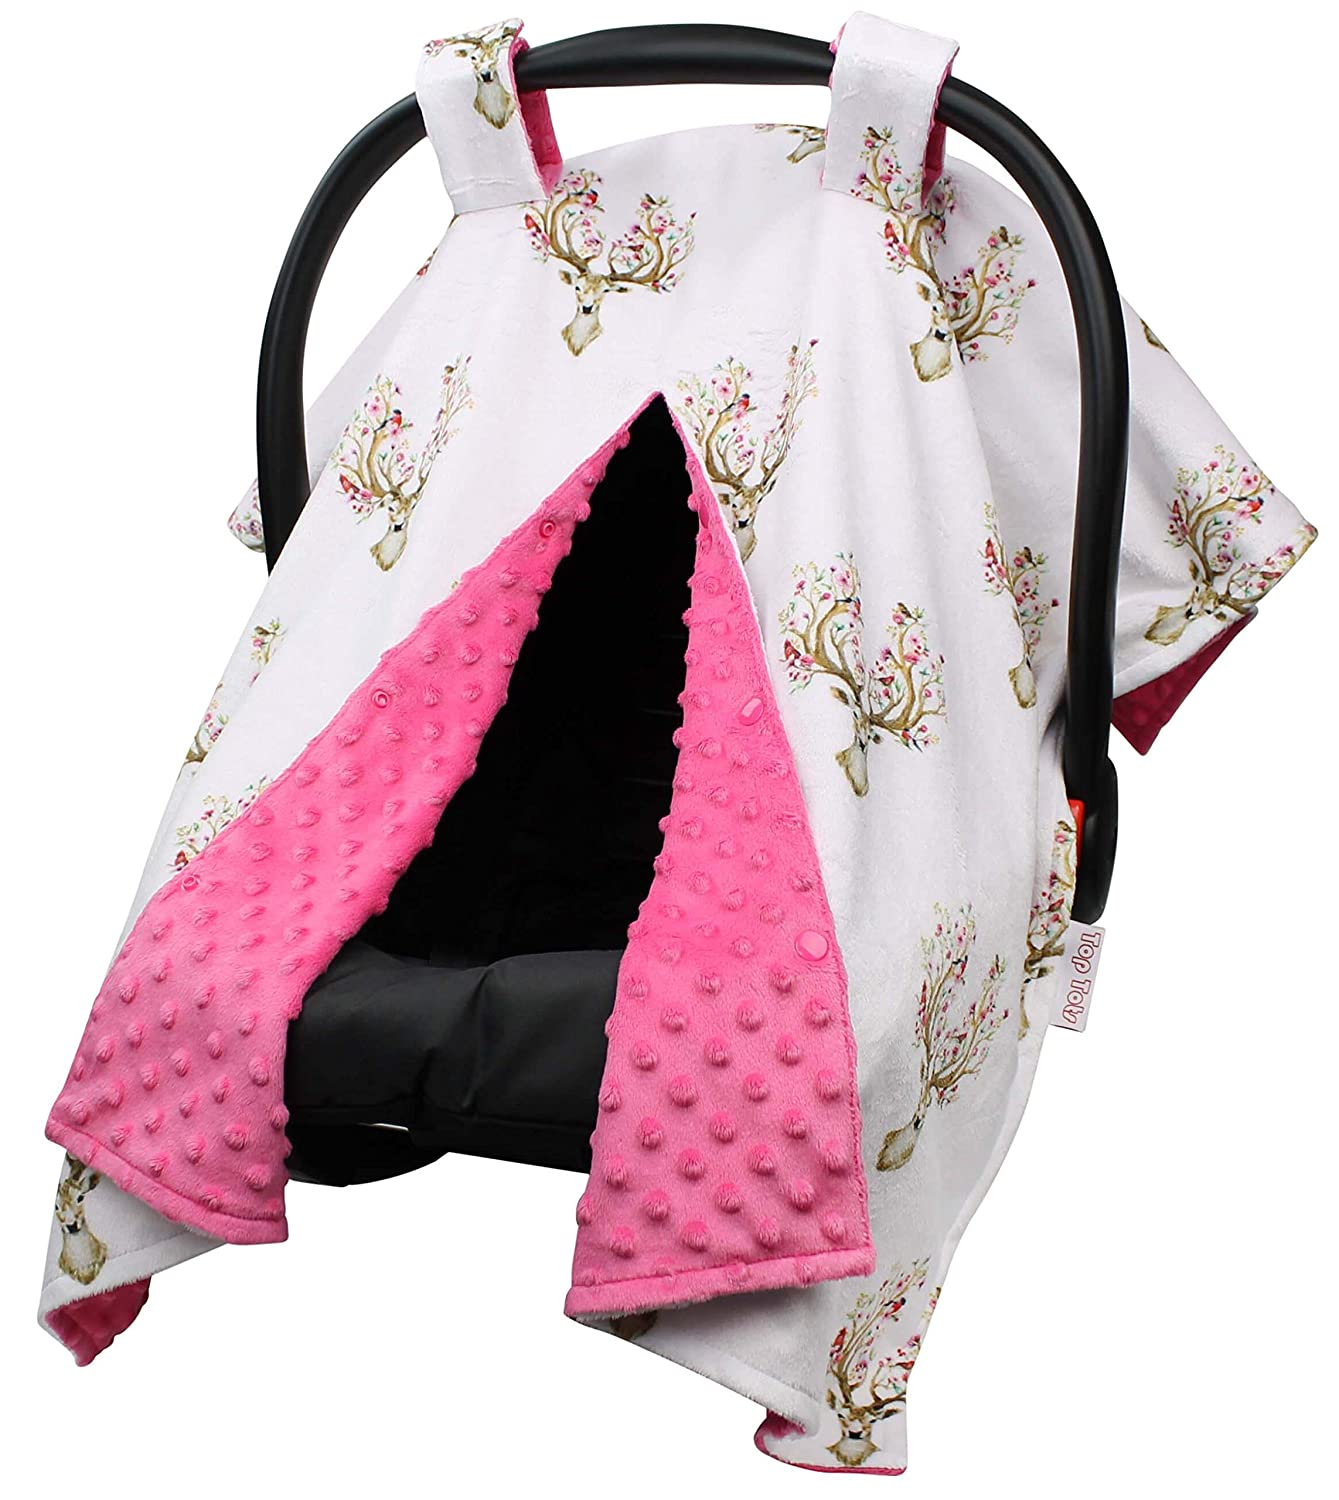 Top Tots Deer Collection Deluxe Minky In stock Polyester Dot Max 52% OFF Car Ca Seat